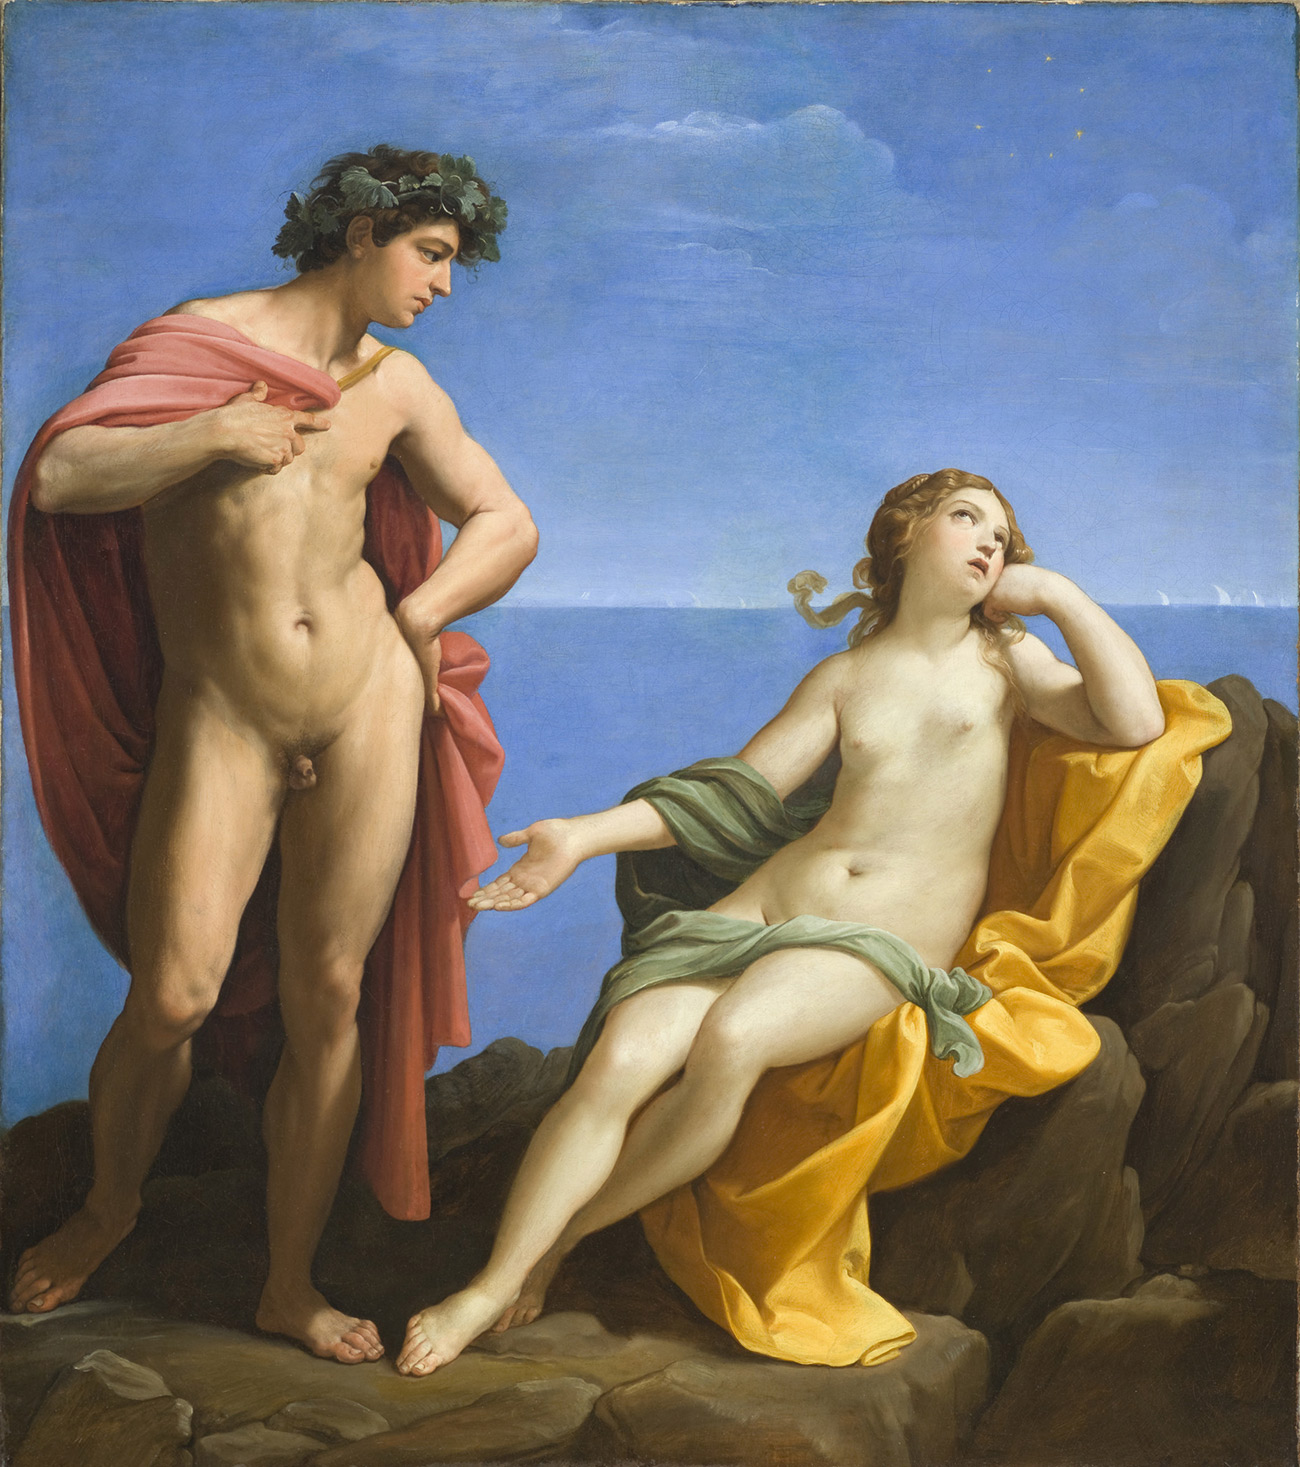 A nude young man stands to the left, with a red cloak around his shoulder, while a nude young woman reclines on a gold cloak on an outcropping of rocks next to the sea